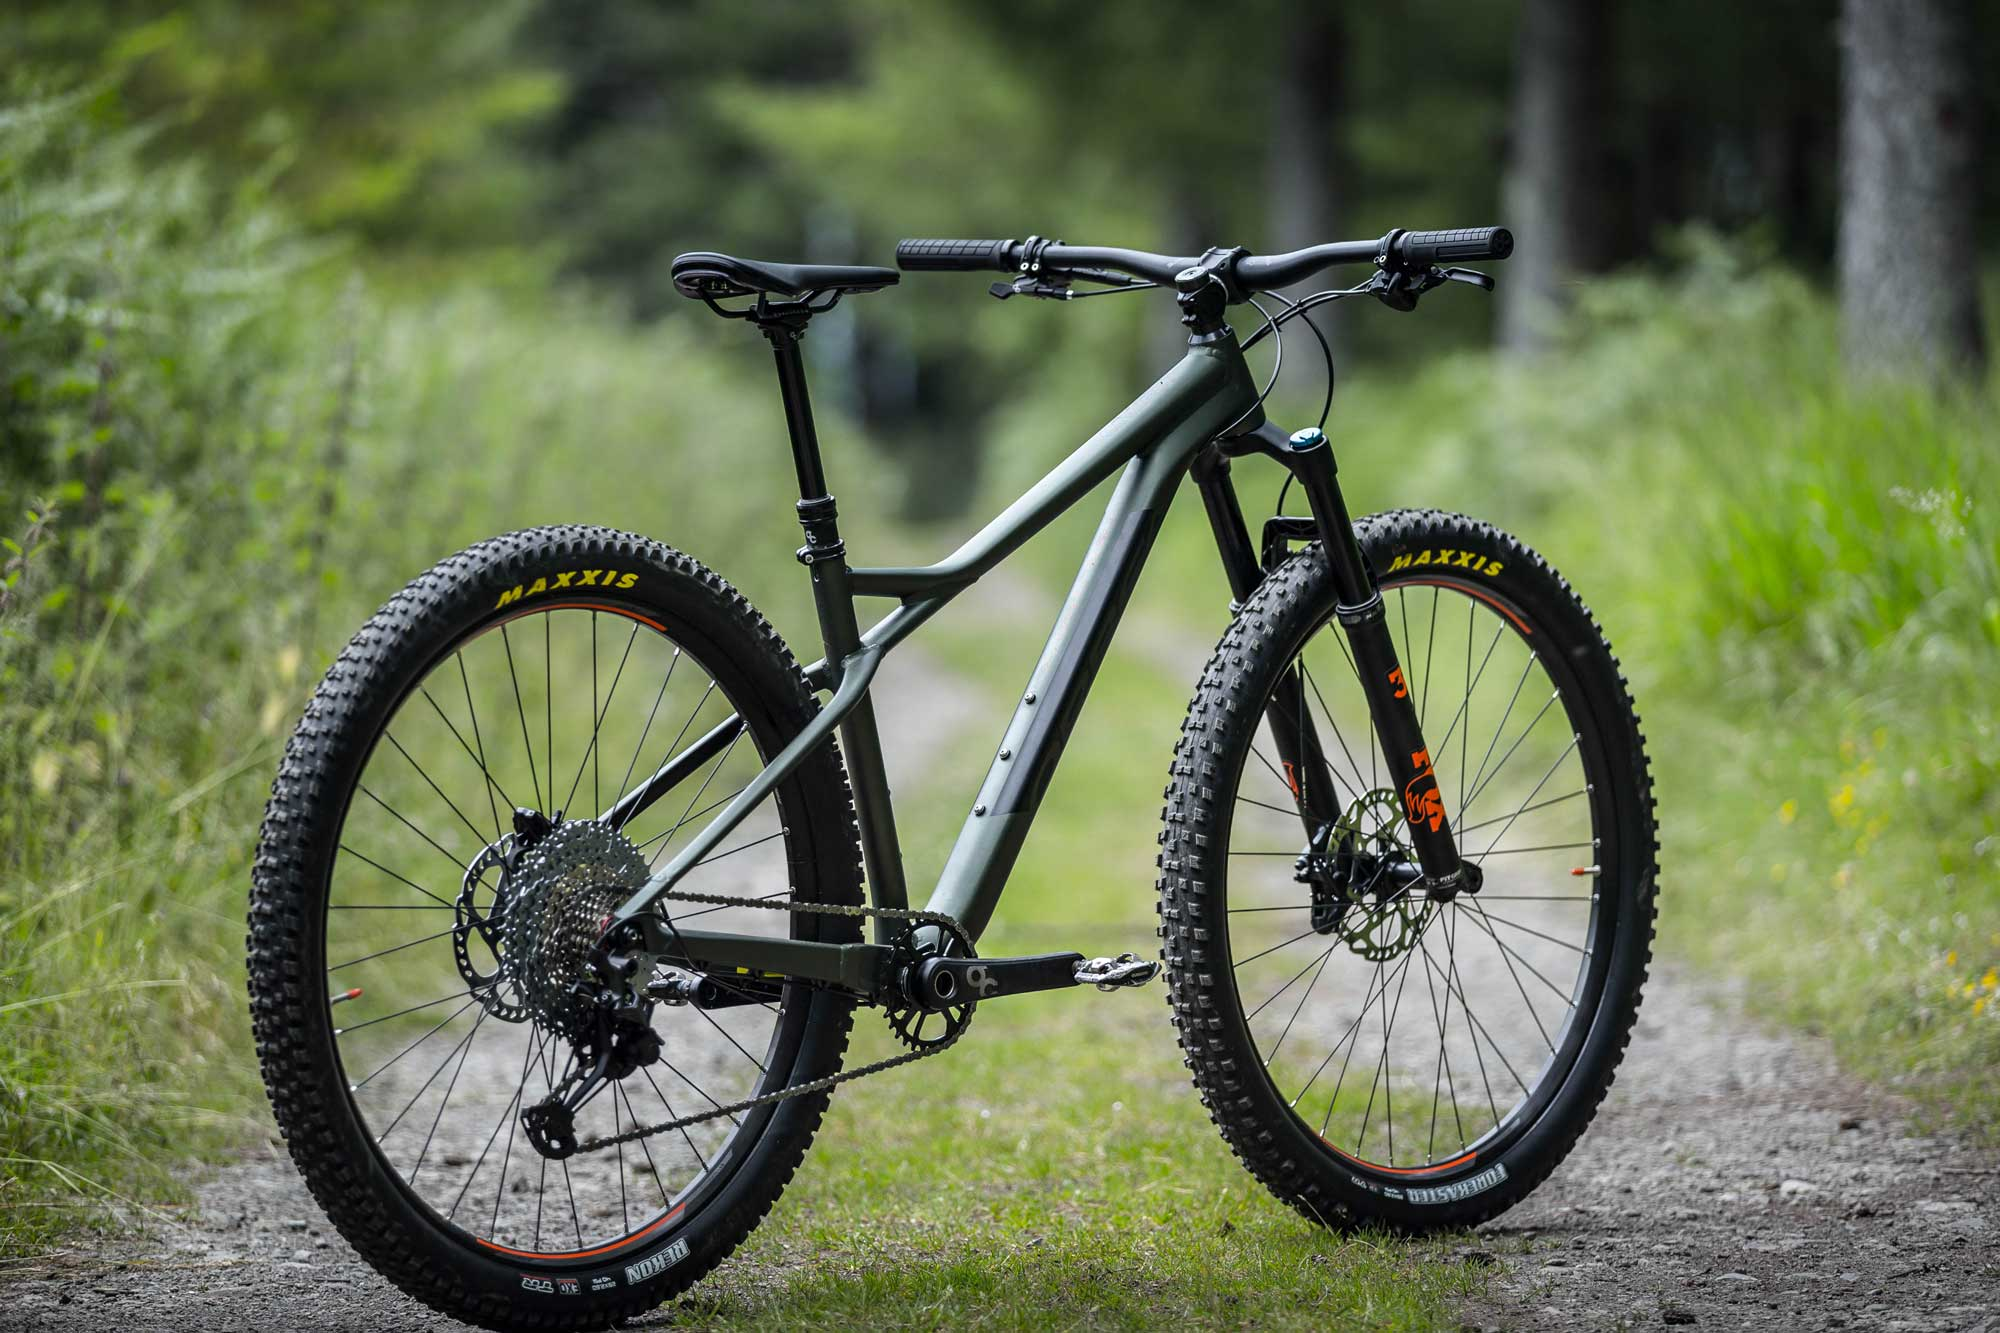 Orbea Introduces the New Master of Fun | Orbea Laufey - The